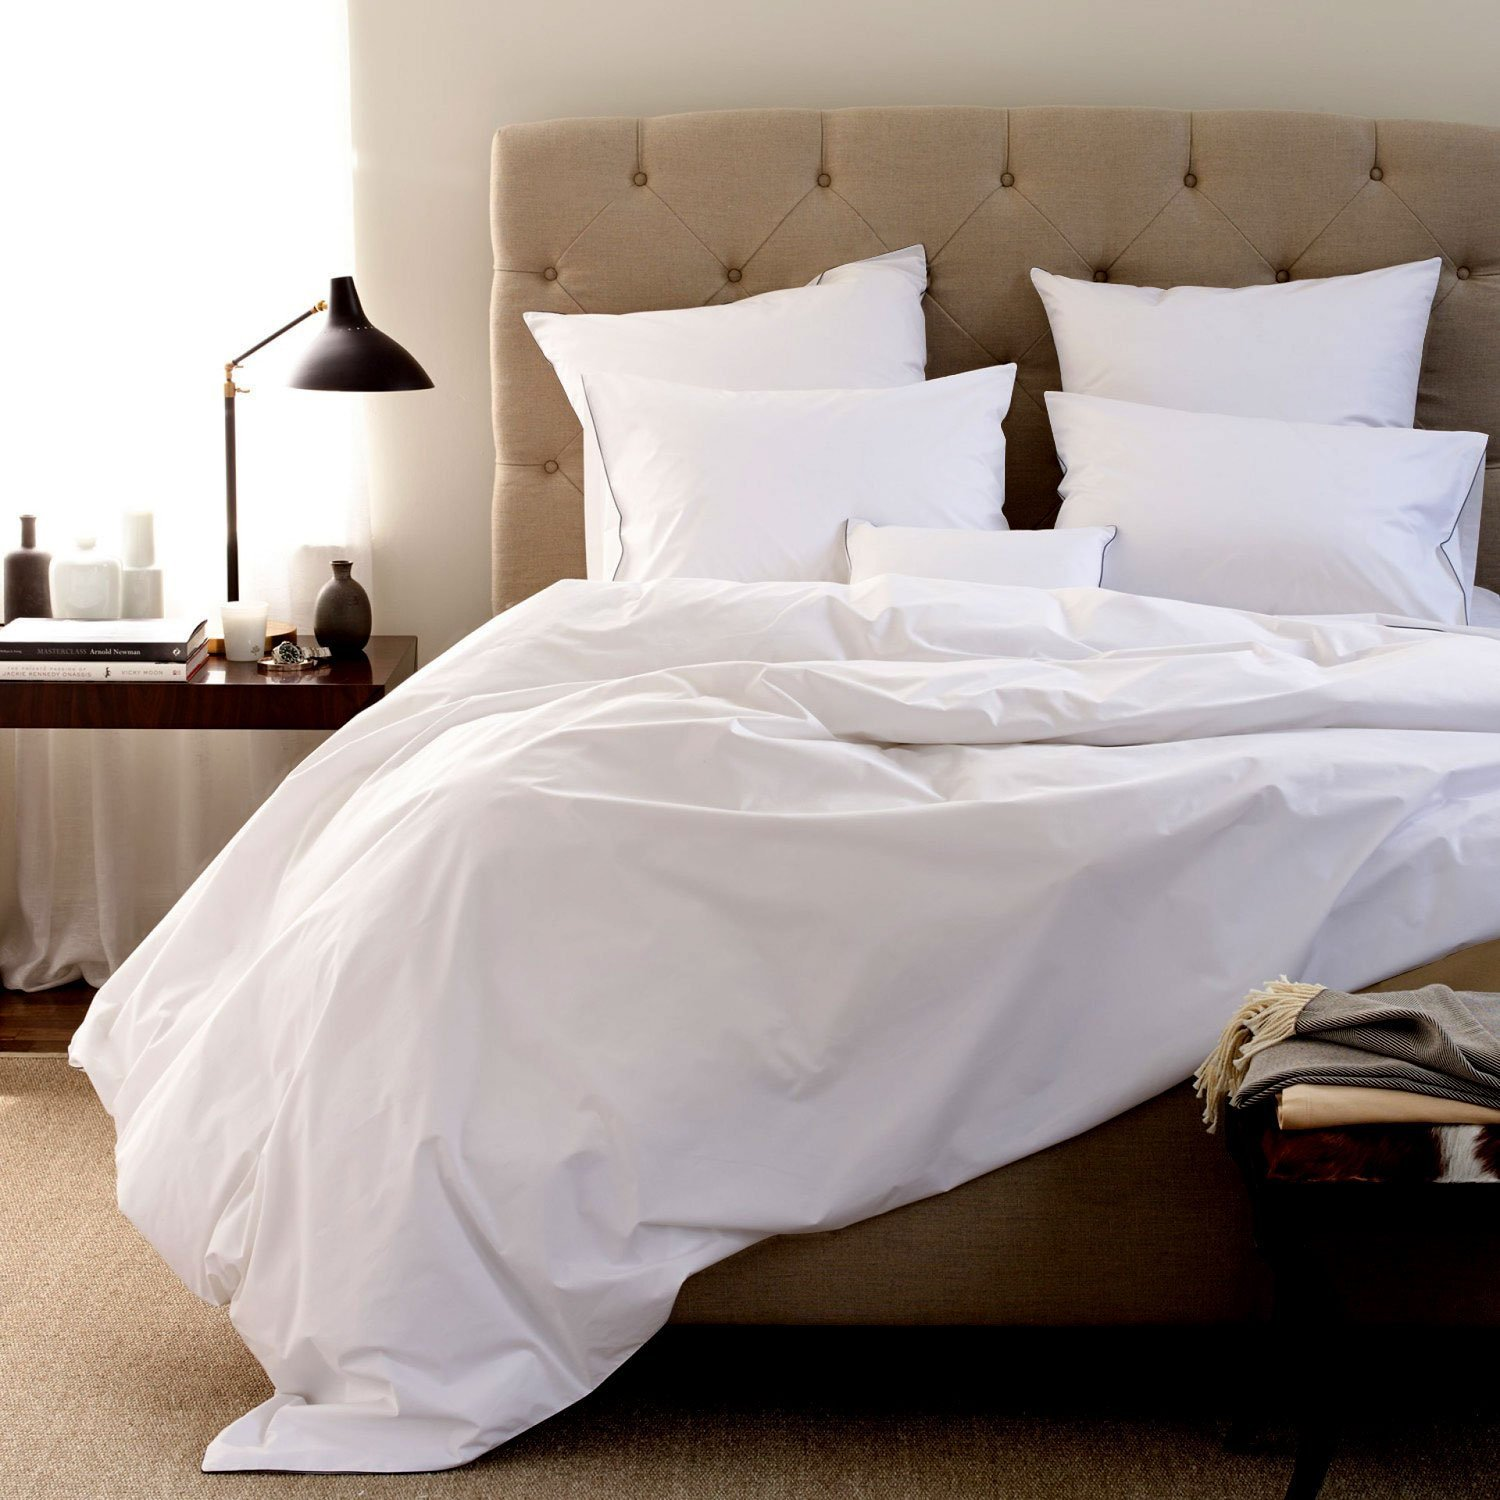 Organic Bed Sheets- sheets are comfortable and ultra-soft & silky# 100% Organic Cotton Sheet Set – Made in India 600 Thread Count - 4pc Bed Sheet Set With 15 INCHES DEEP POCKET (KING, SNOW)